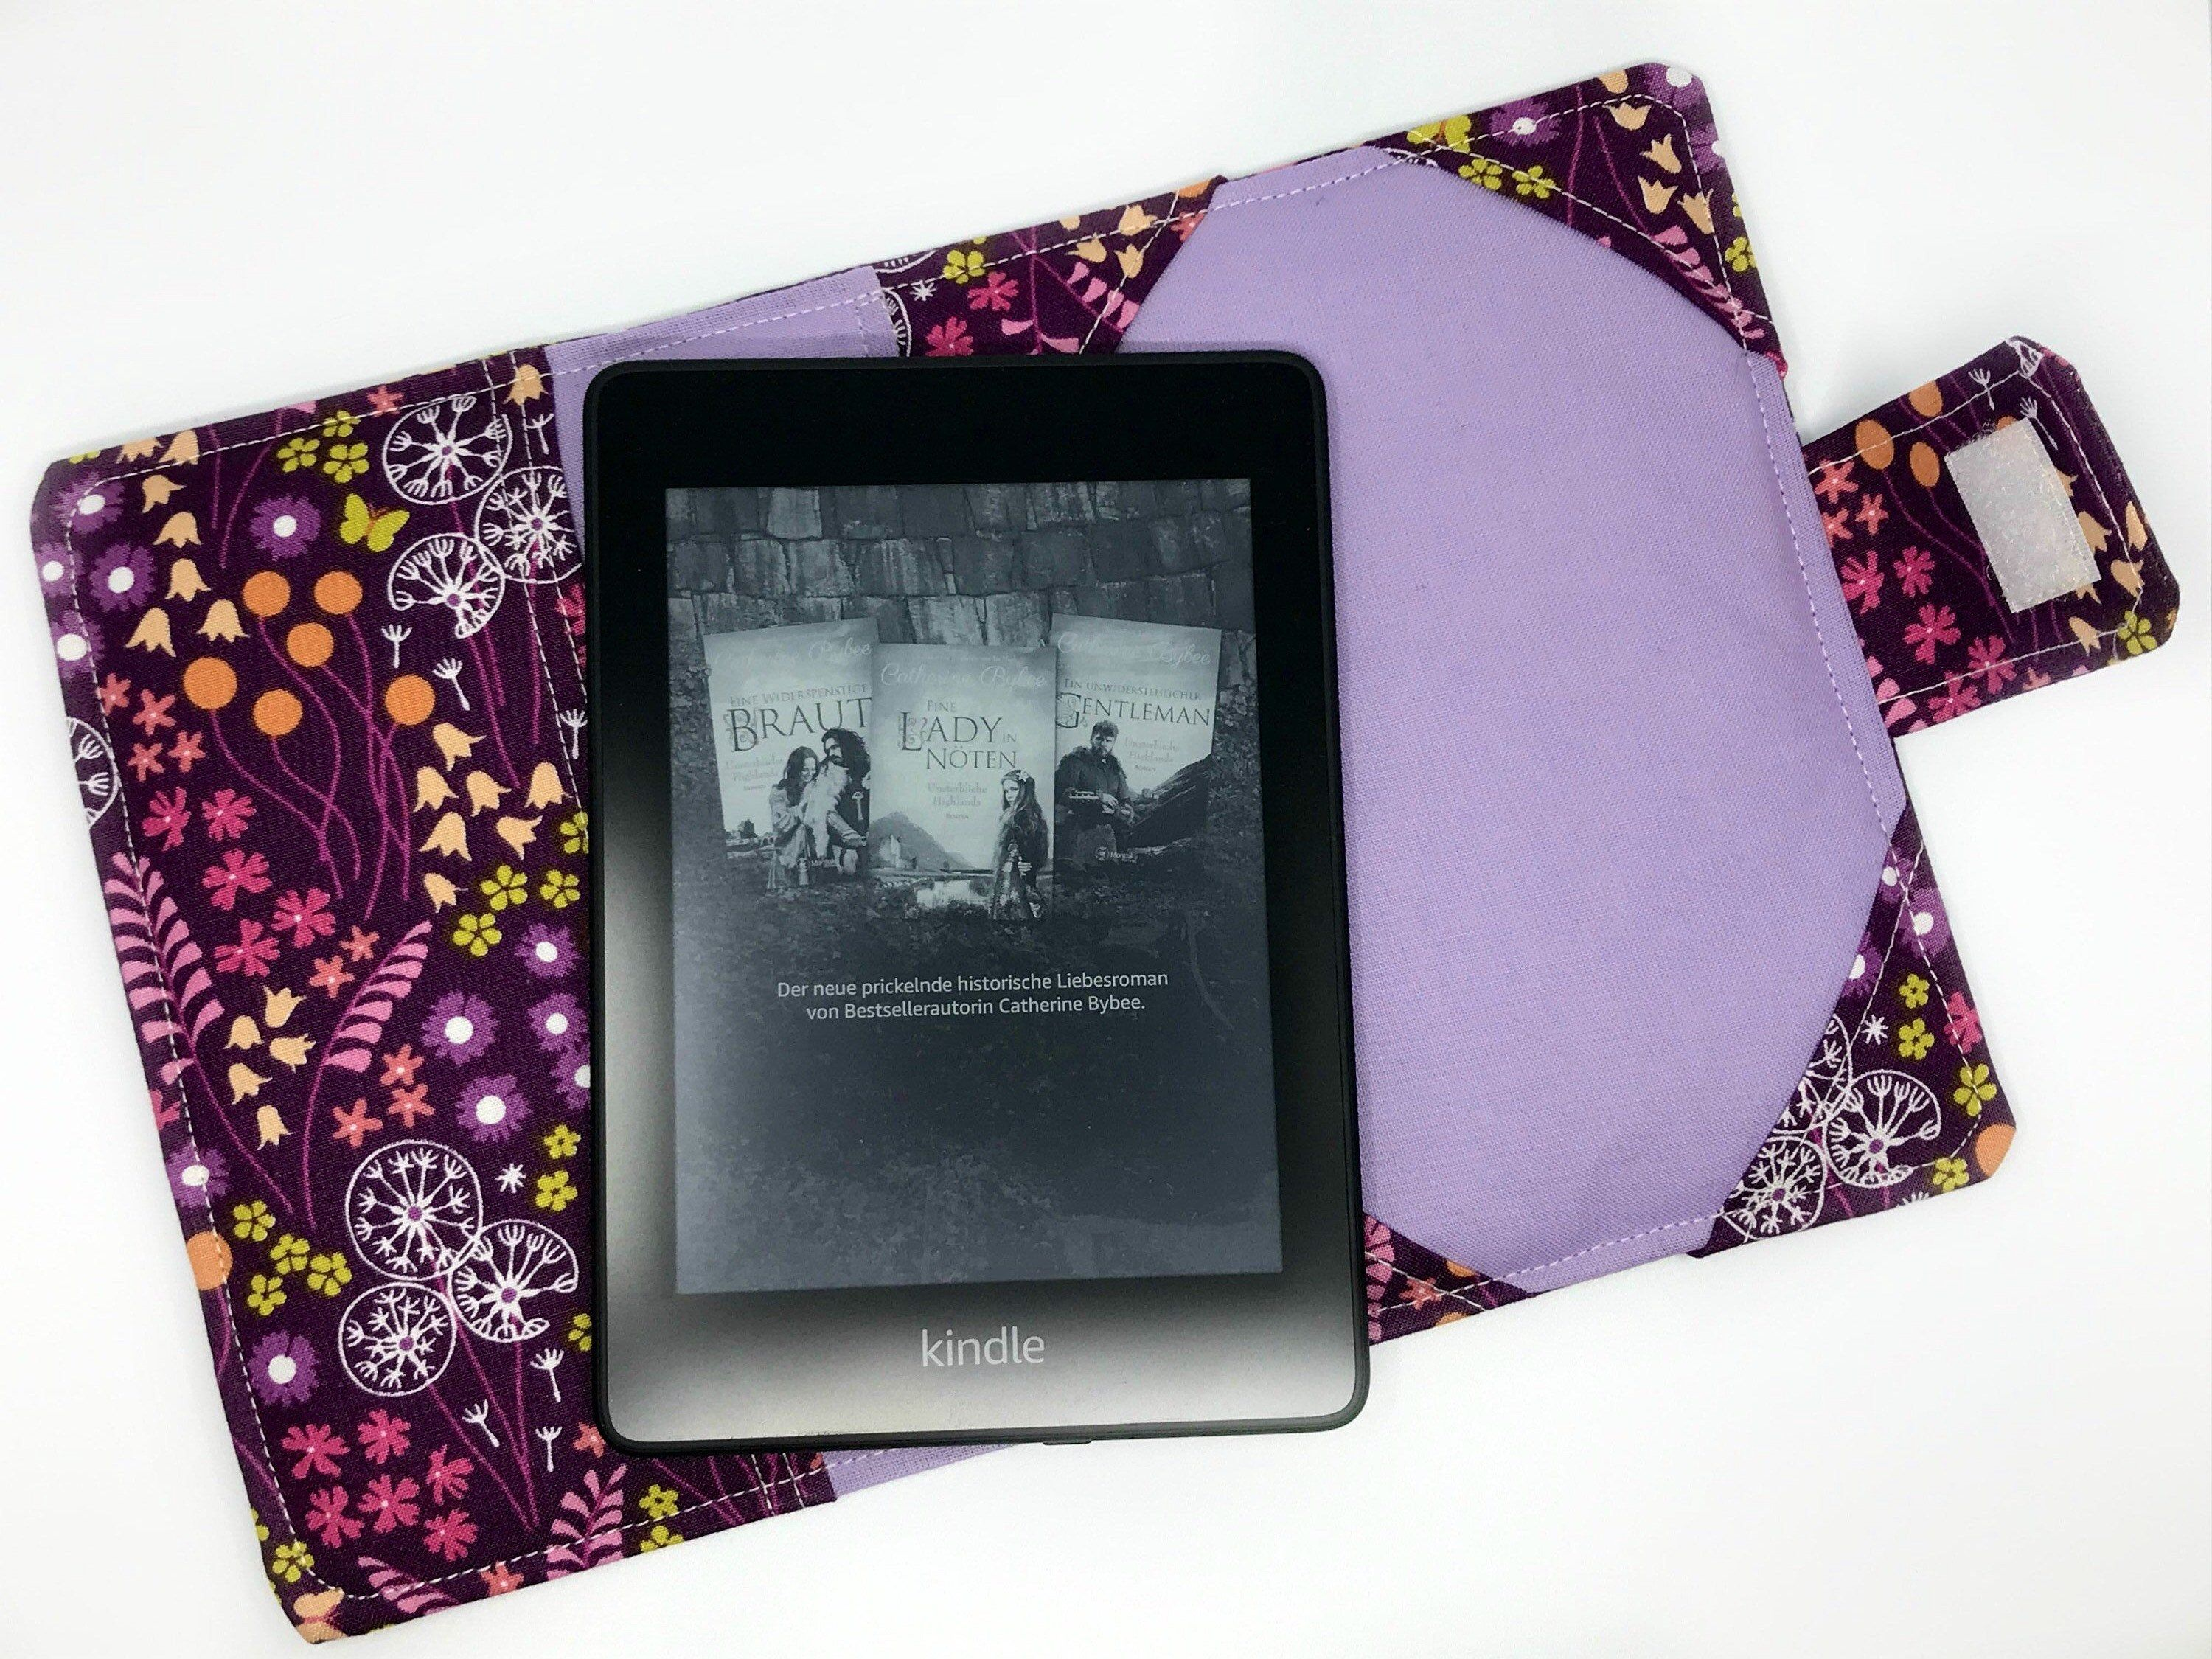 Floral Kindle Paperwhite Case Kobo Nook And Tolino Case Etsy In 2020 Kindle Paperwhite Case Kindle Paperwhite Ereader Cover